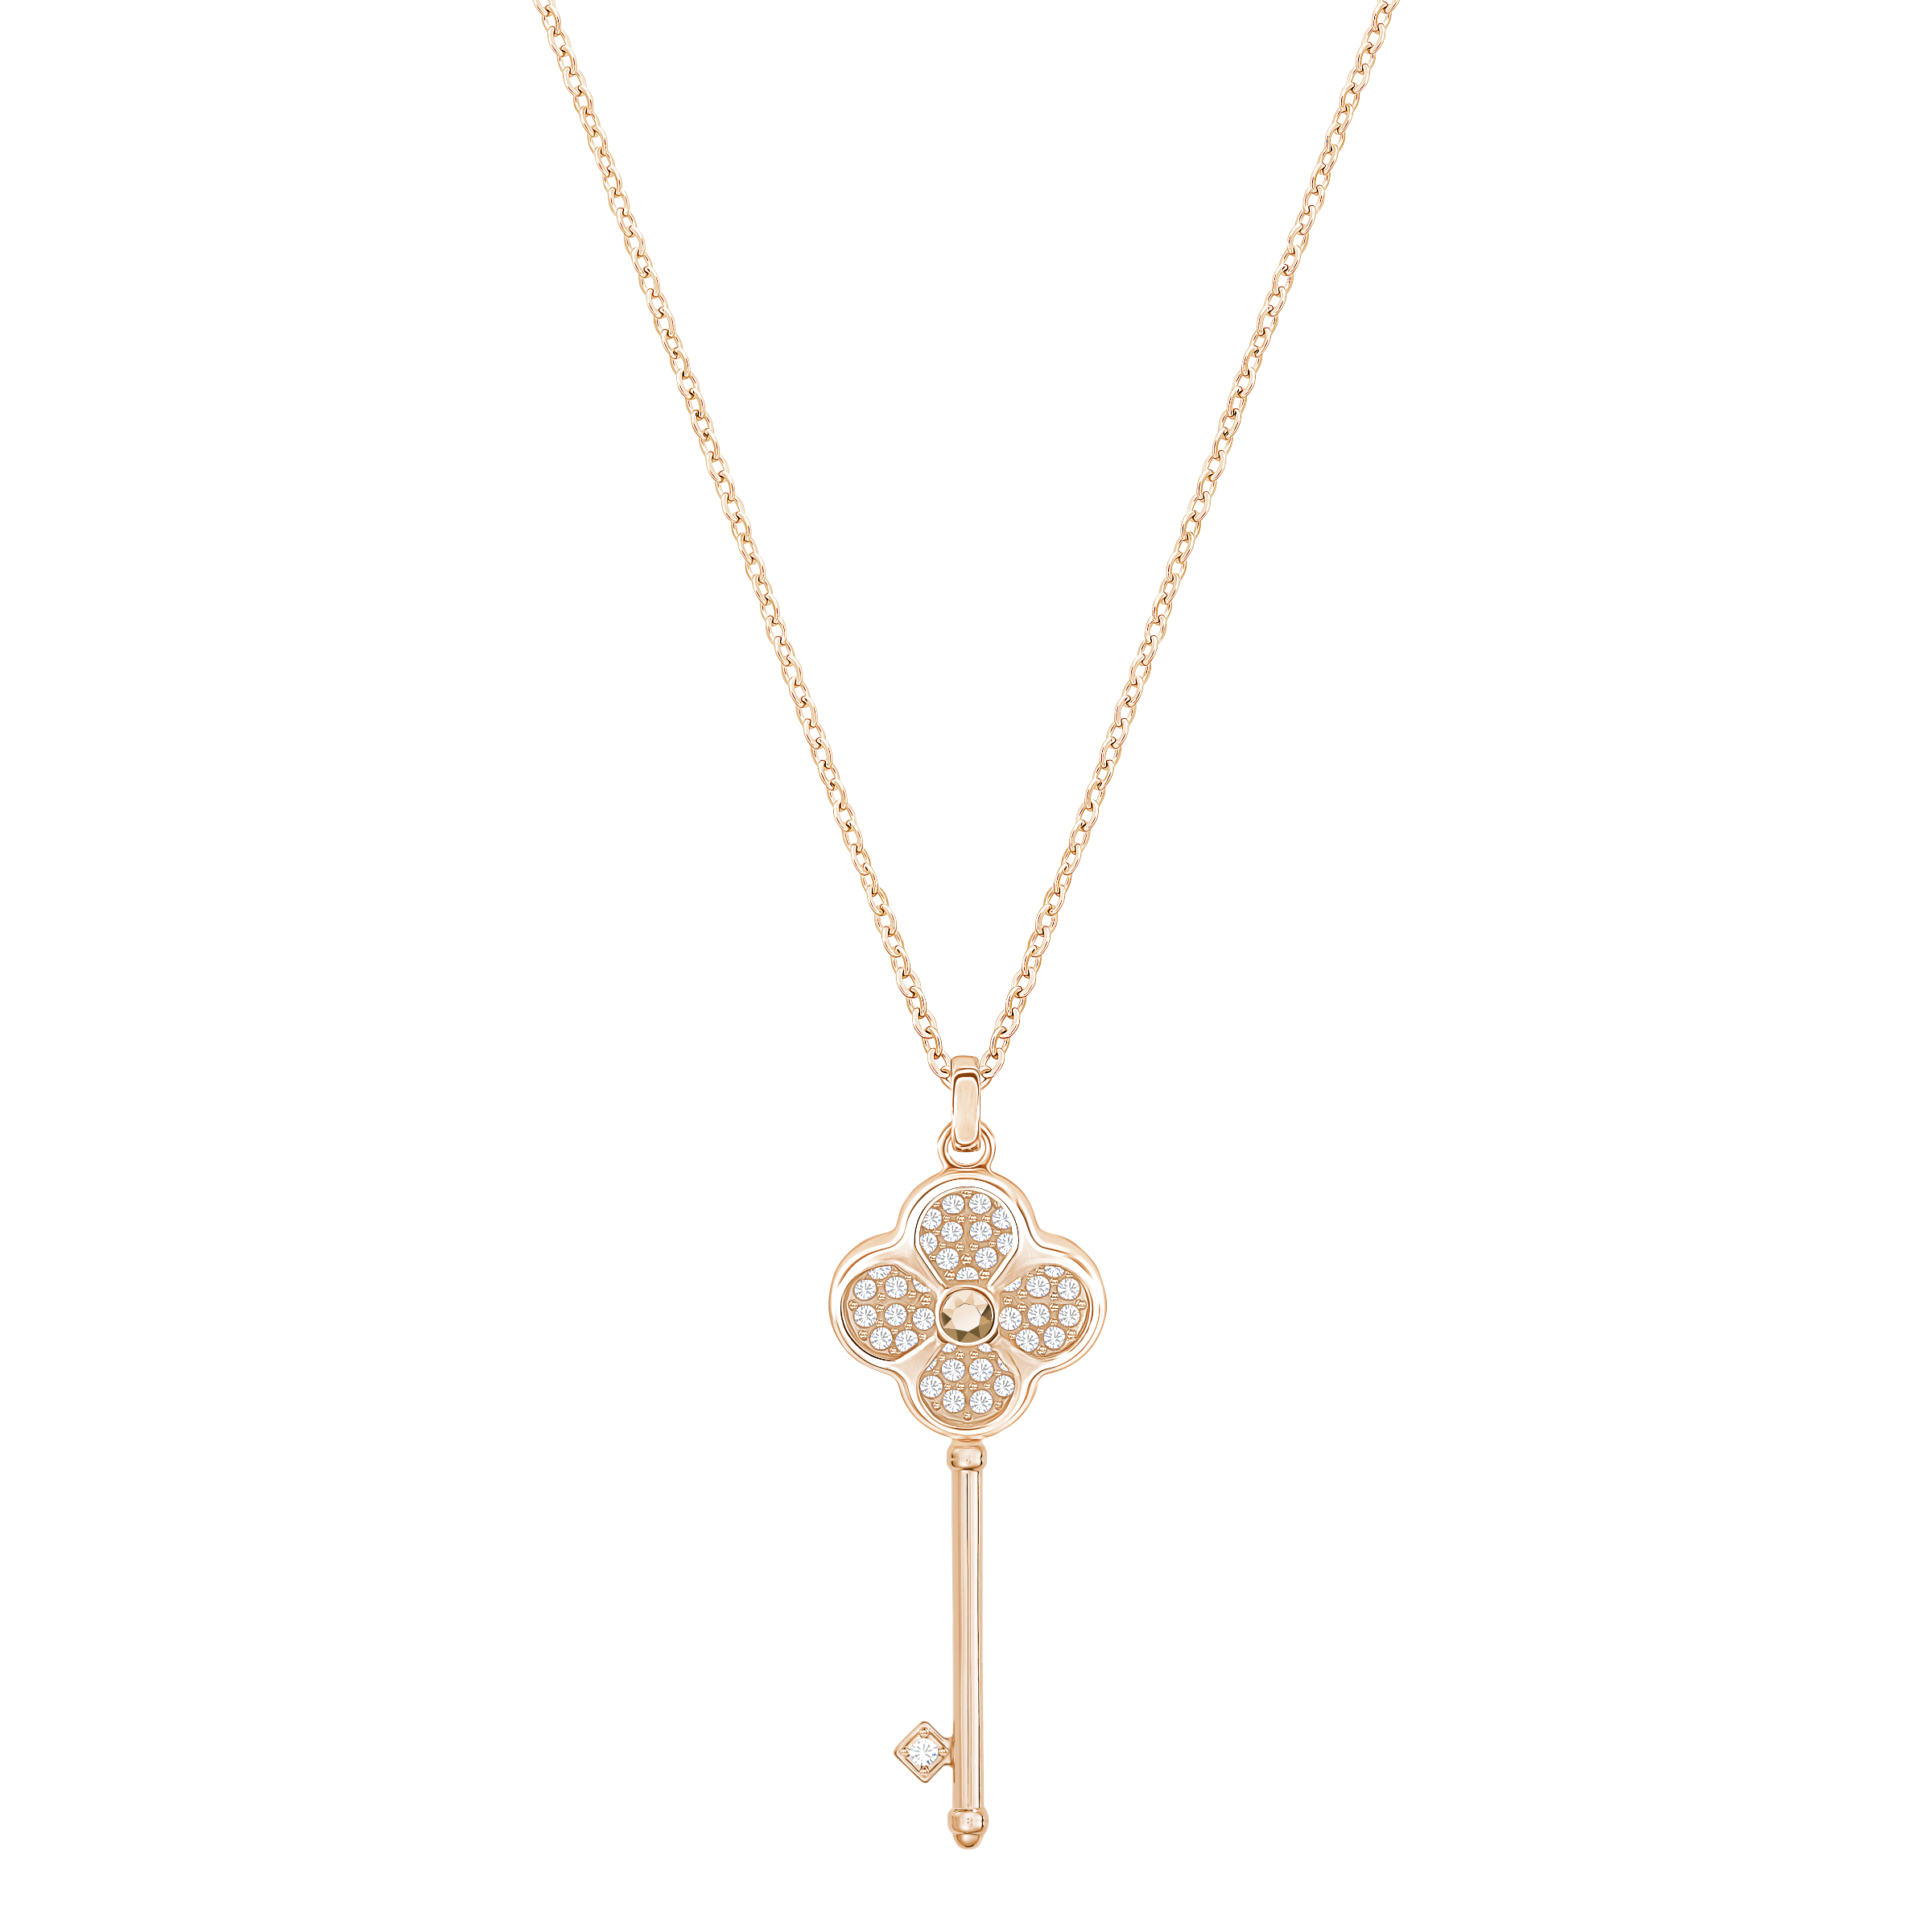 Hall Key Pendant, Multi-colored, Rose gold tone plated